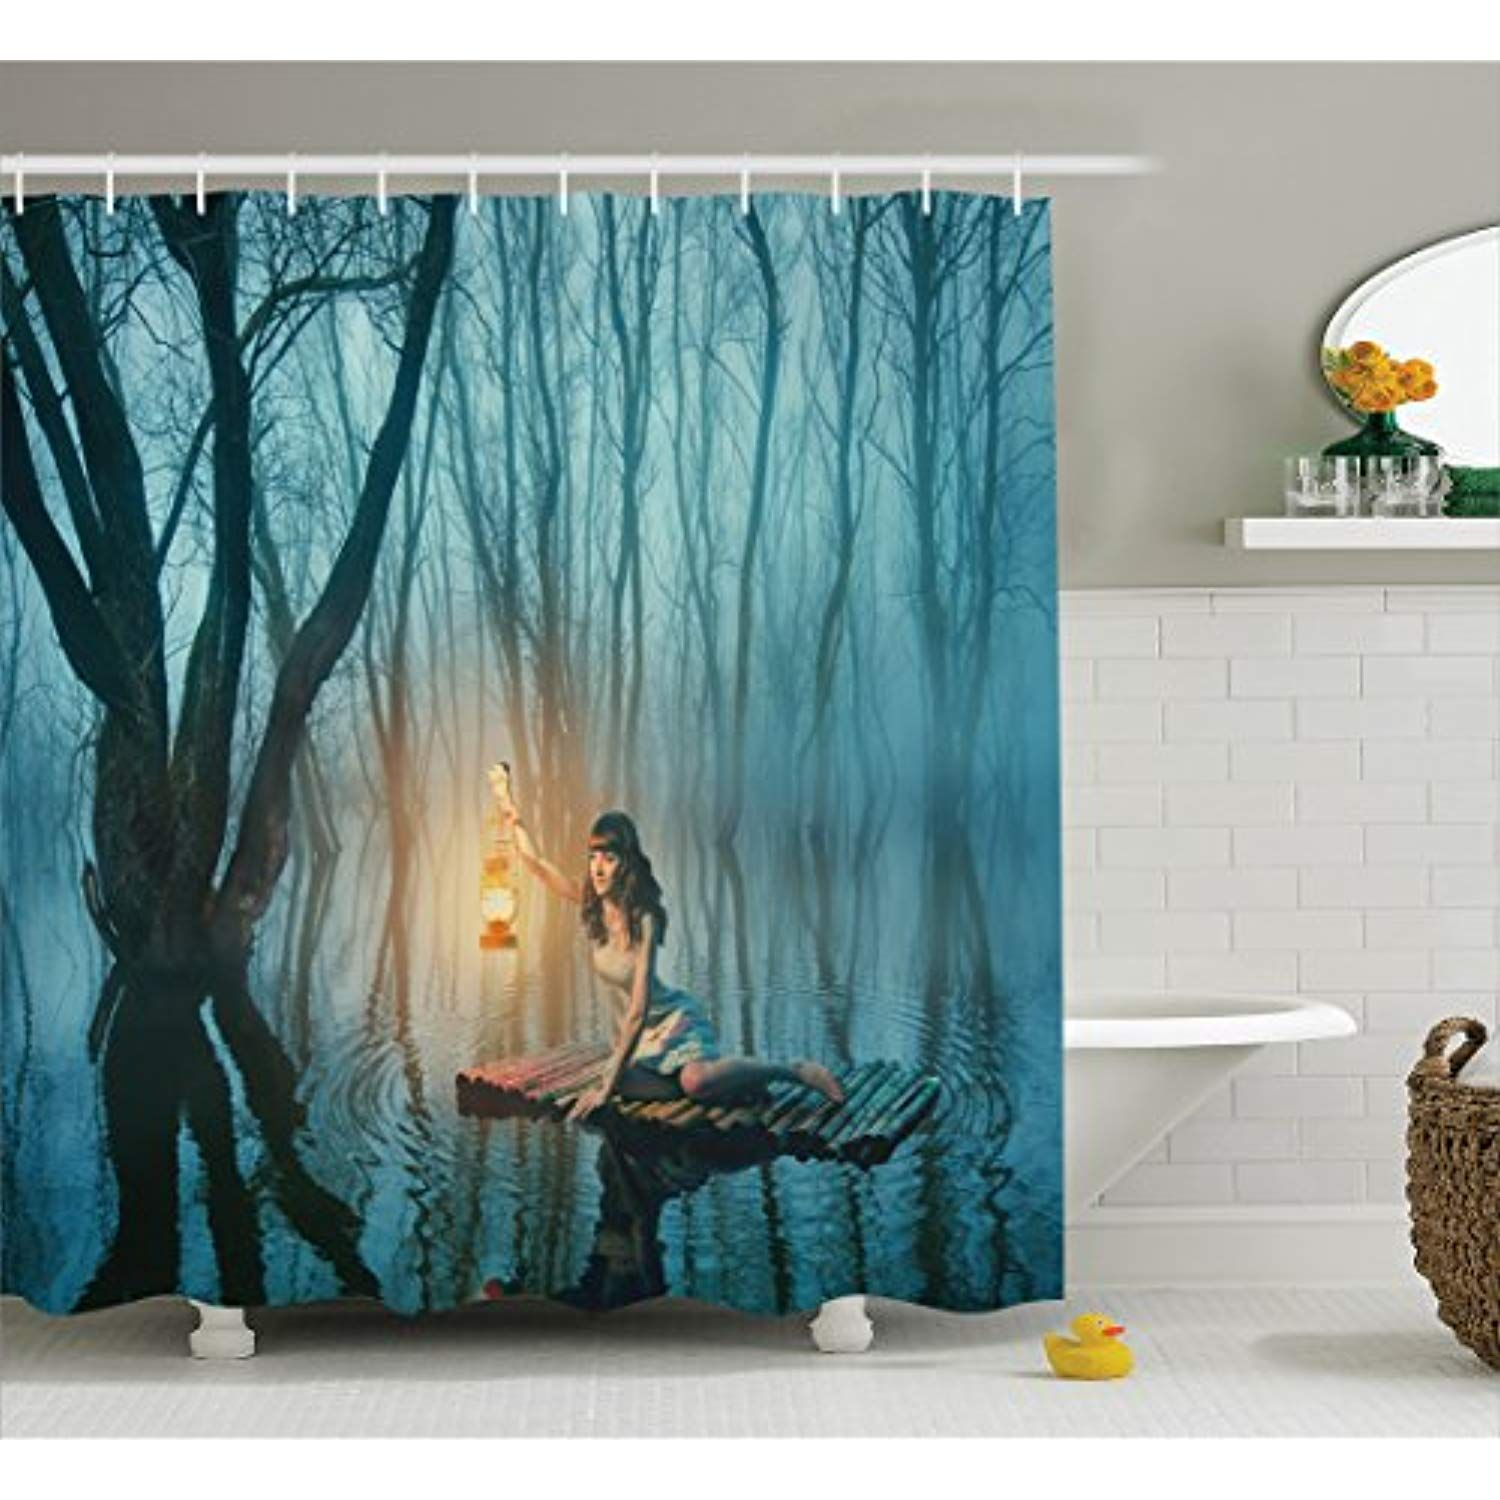 Ambesonne Gothic Decor Collection Fairy Tale Woman With Lantern Floating On Lake Rustic Dress In Bathroom Decor Sets Gothic Decor Bathroom Shower Curtain Sets 75 inch long shower curtain